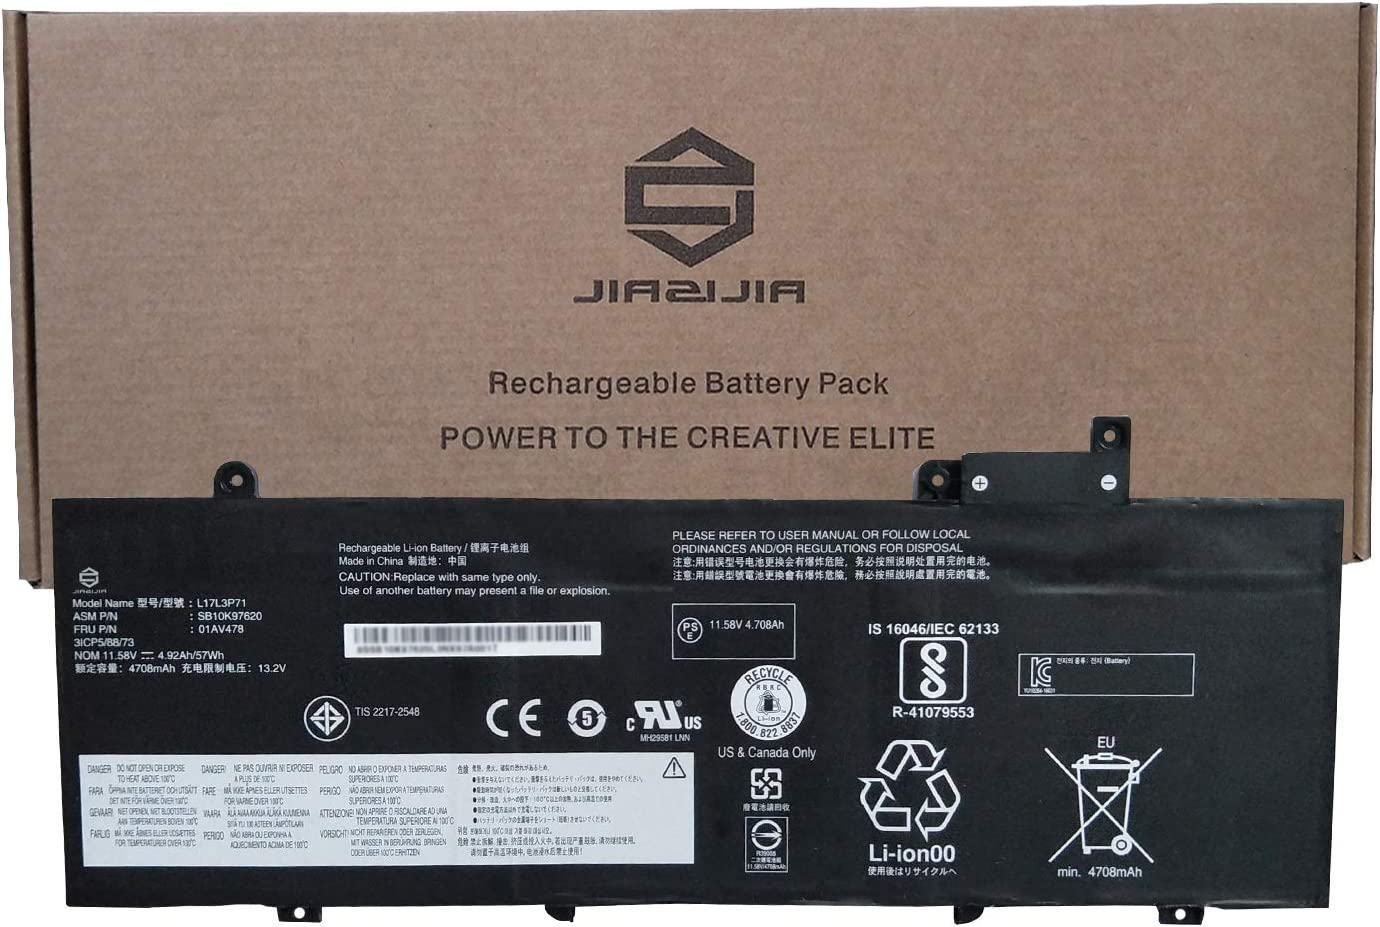 JIAZIJIA 01AV478 Laptop Credence Battery Cheap SALE Start for Lenovo Replacement ThinkPad